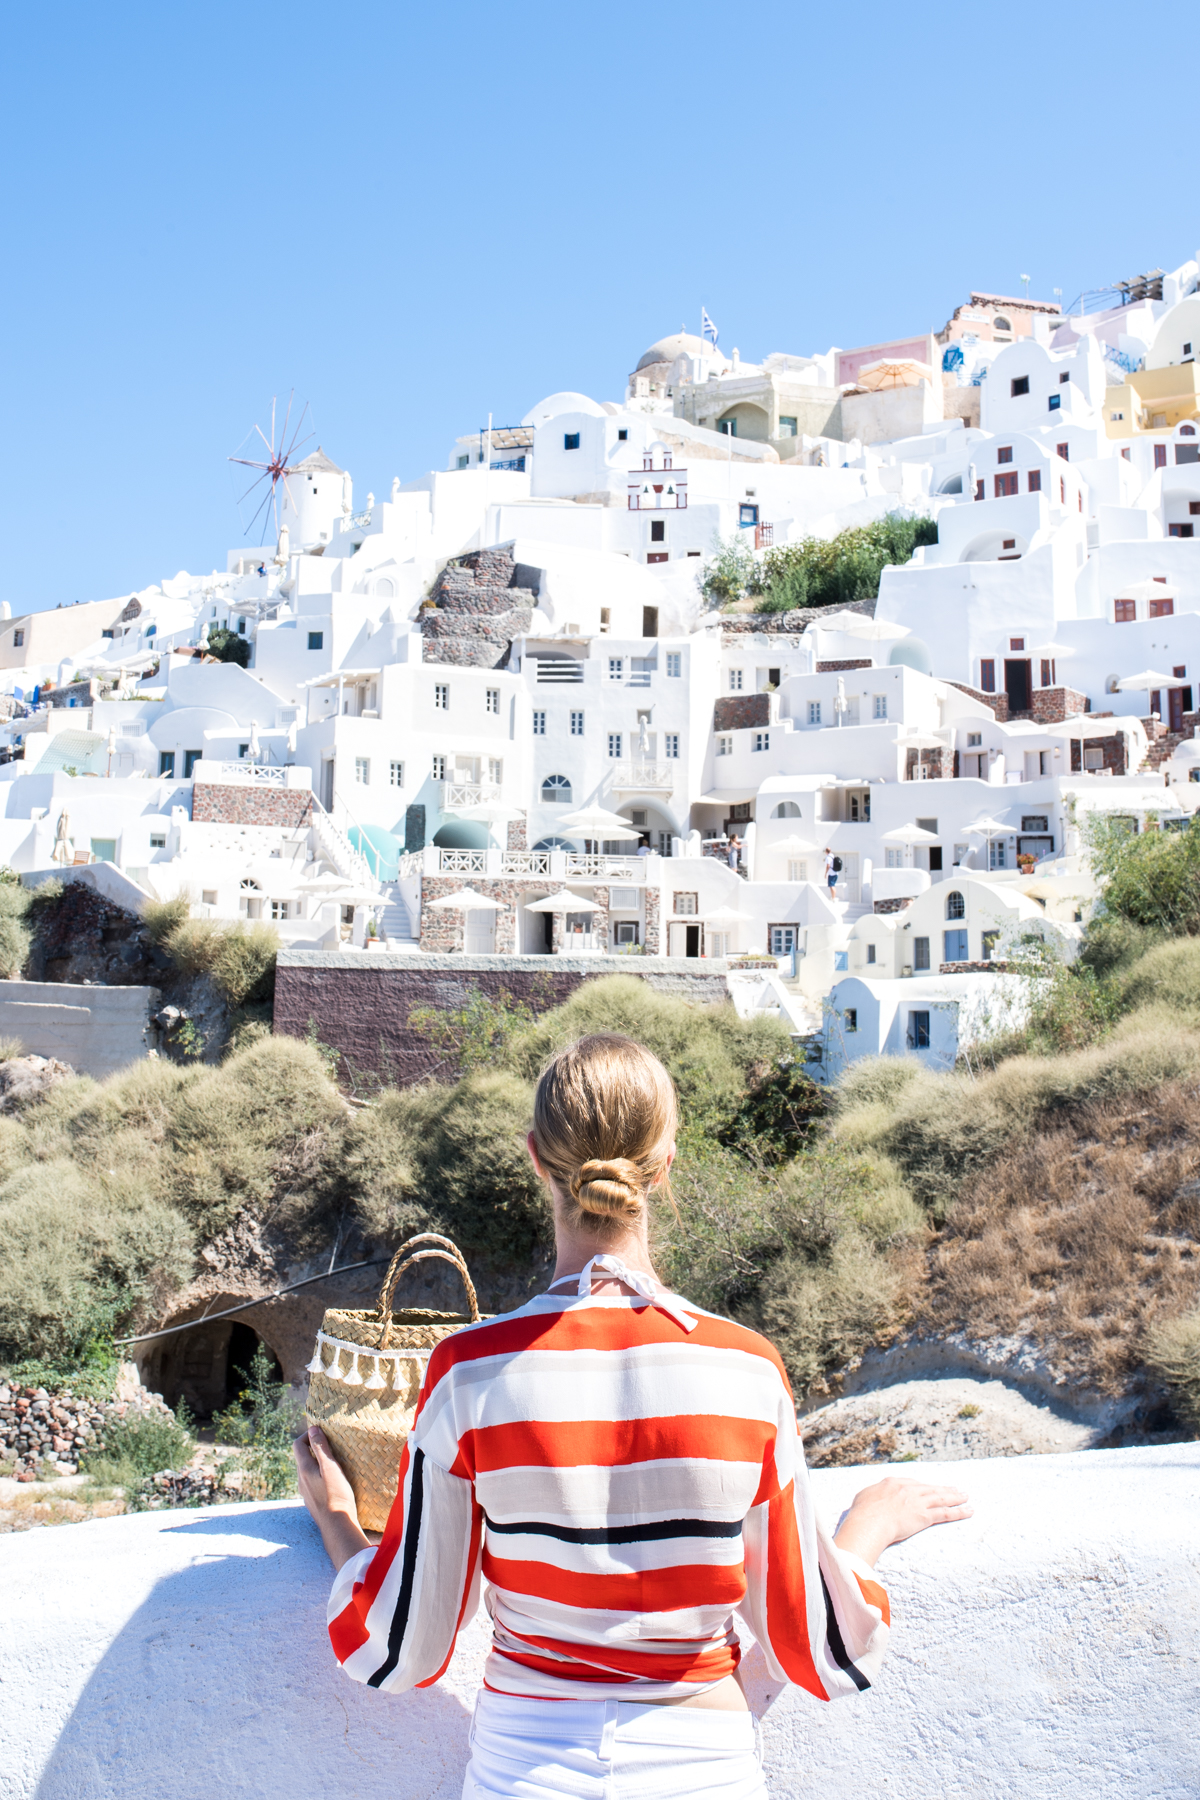 Stacie Flinner Travel Guide Santorini Greece-60.jpg